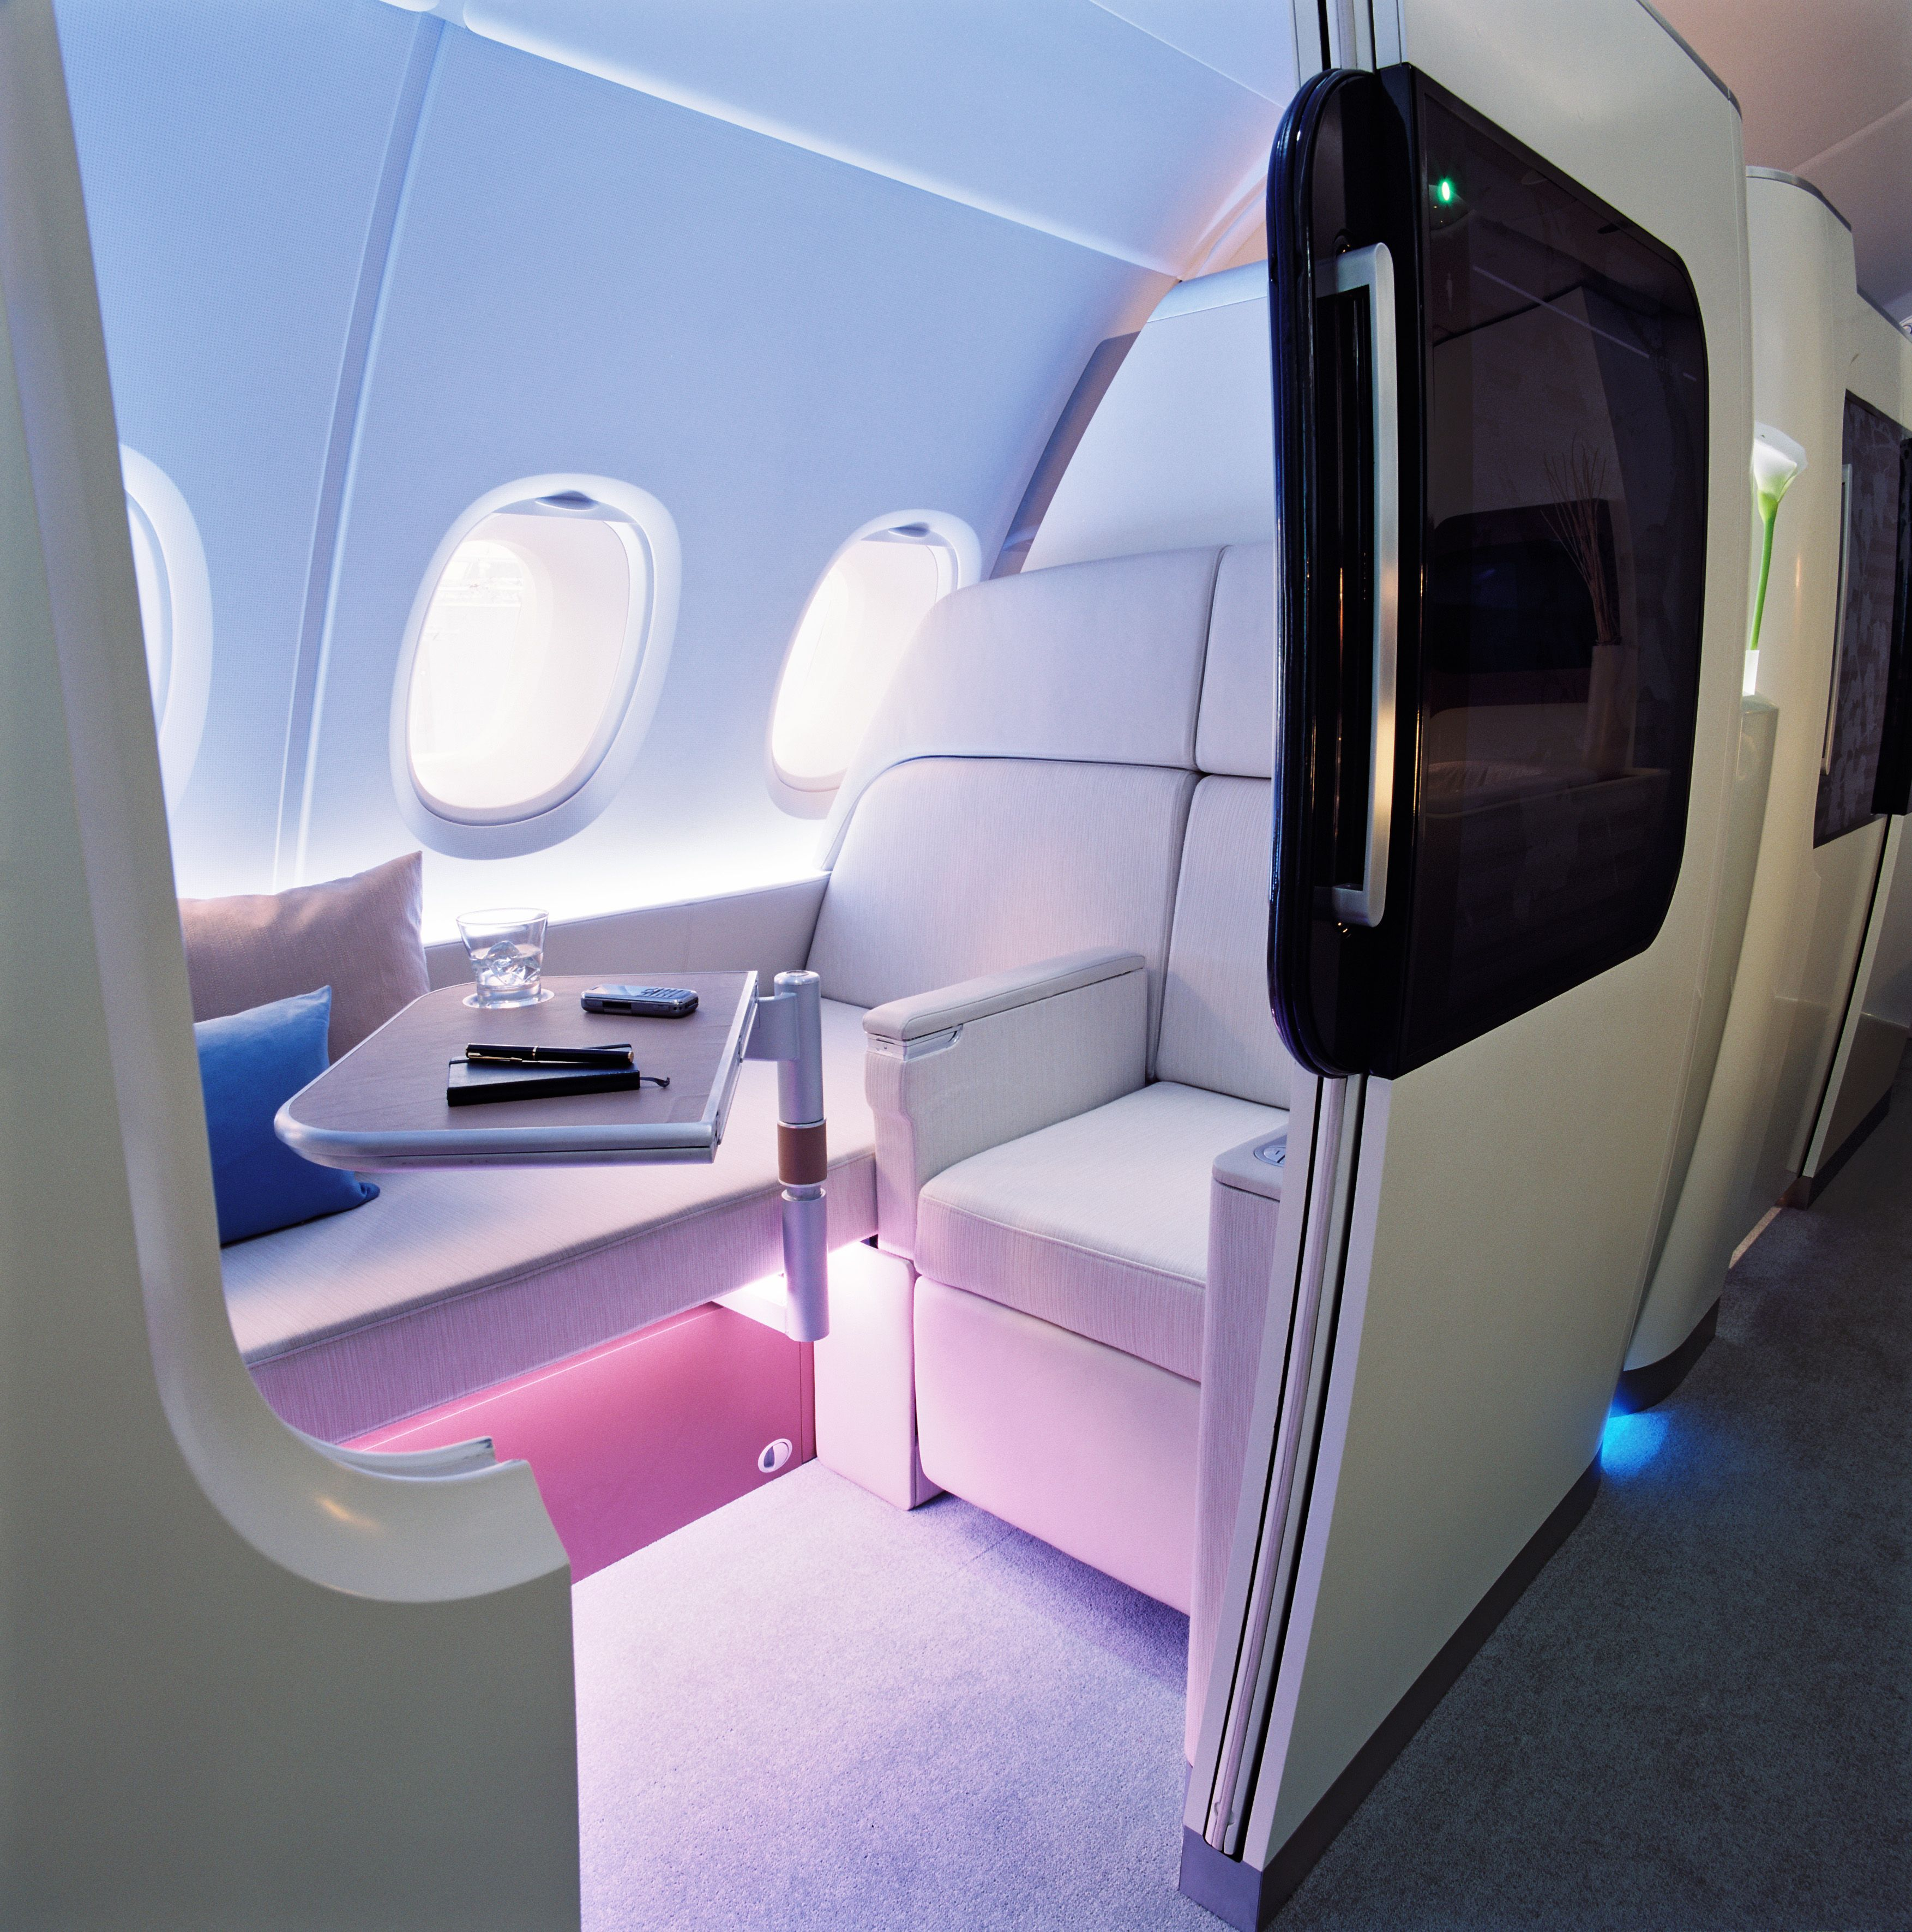 Only The Best FREAKING PLANE IN THE WORLD Http1502983talkfusionprodu